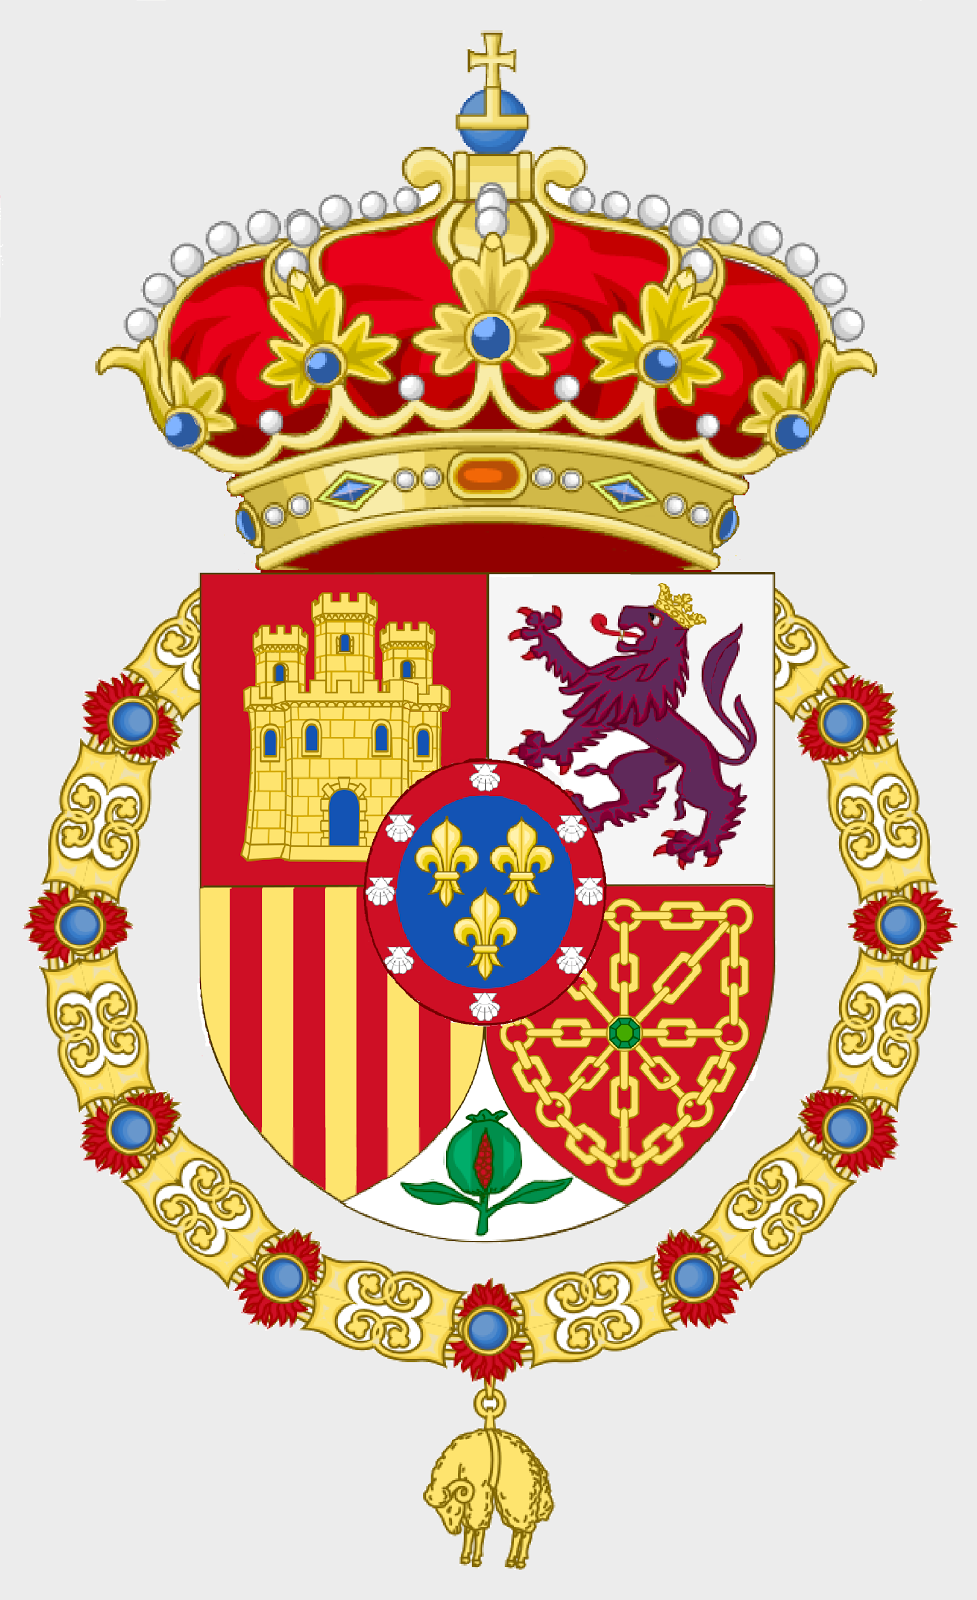 Escudo de S.M.C. don Carlos Javier I de Borbón Parma